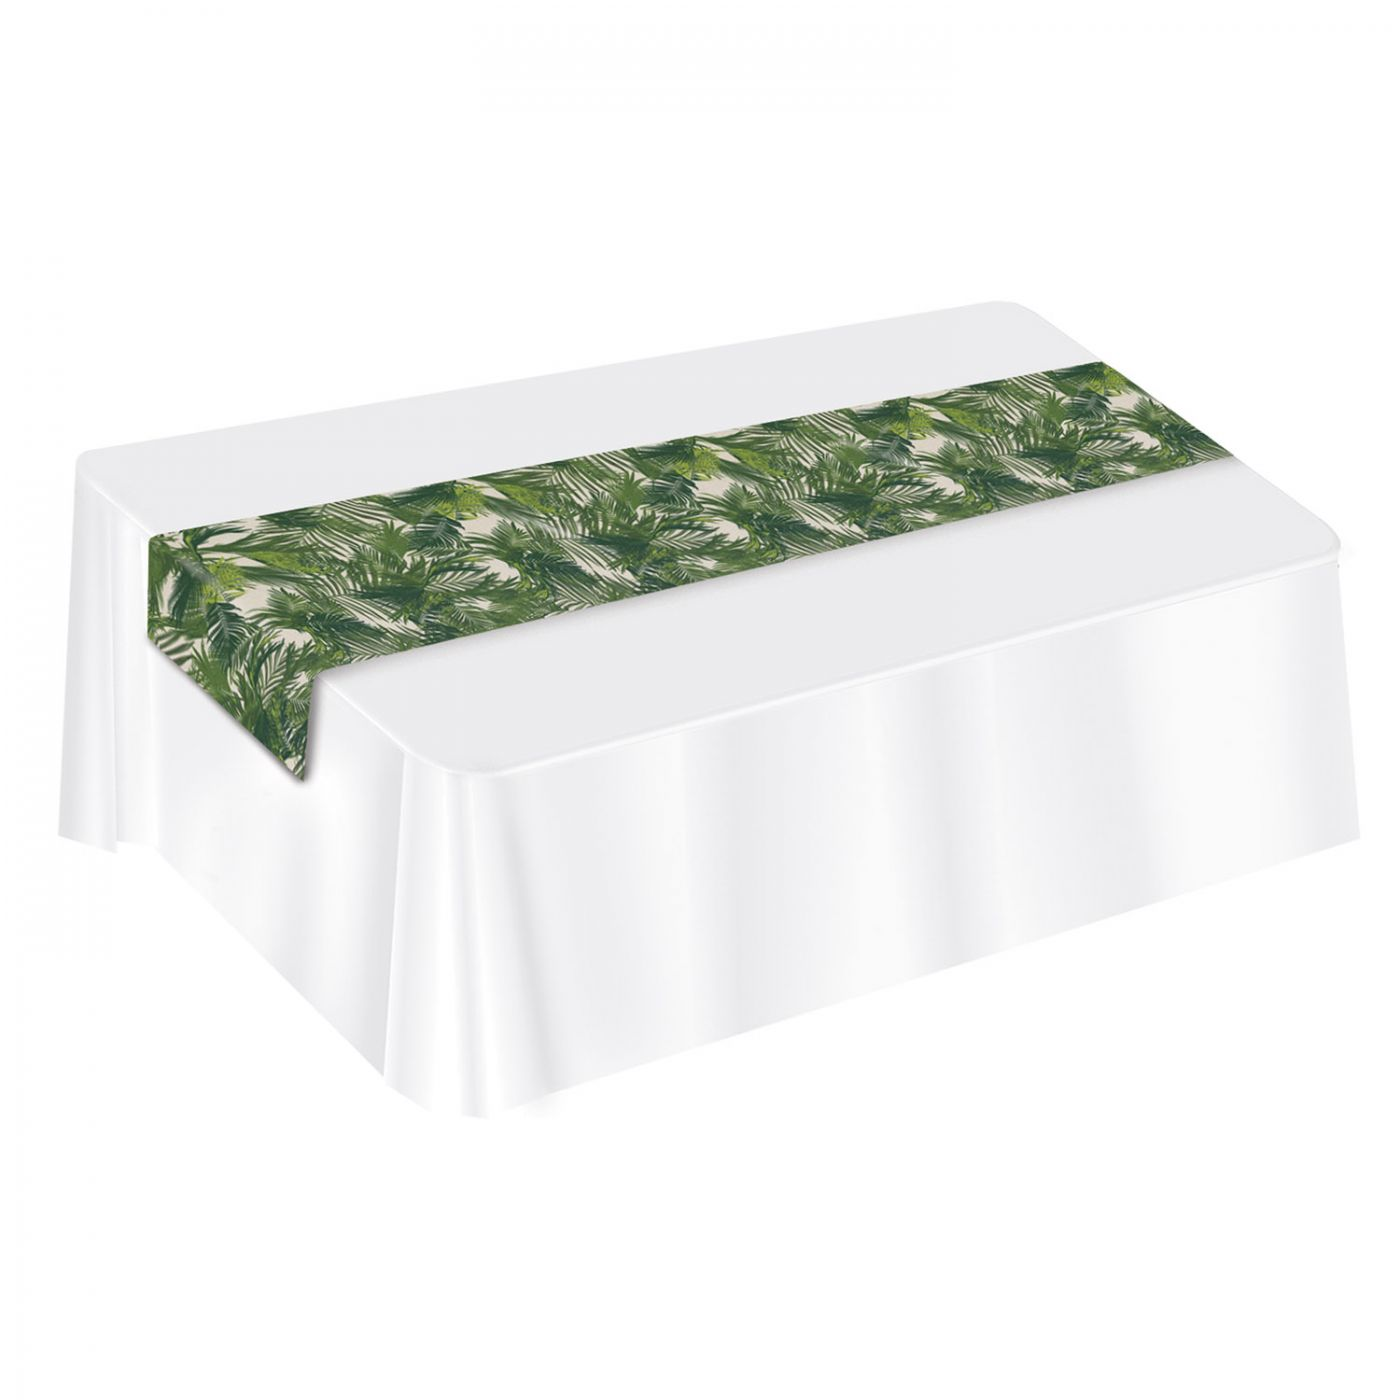 Palm Leaf Fabric Table Runner image